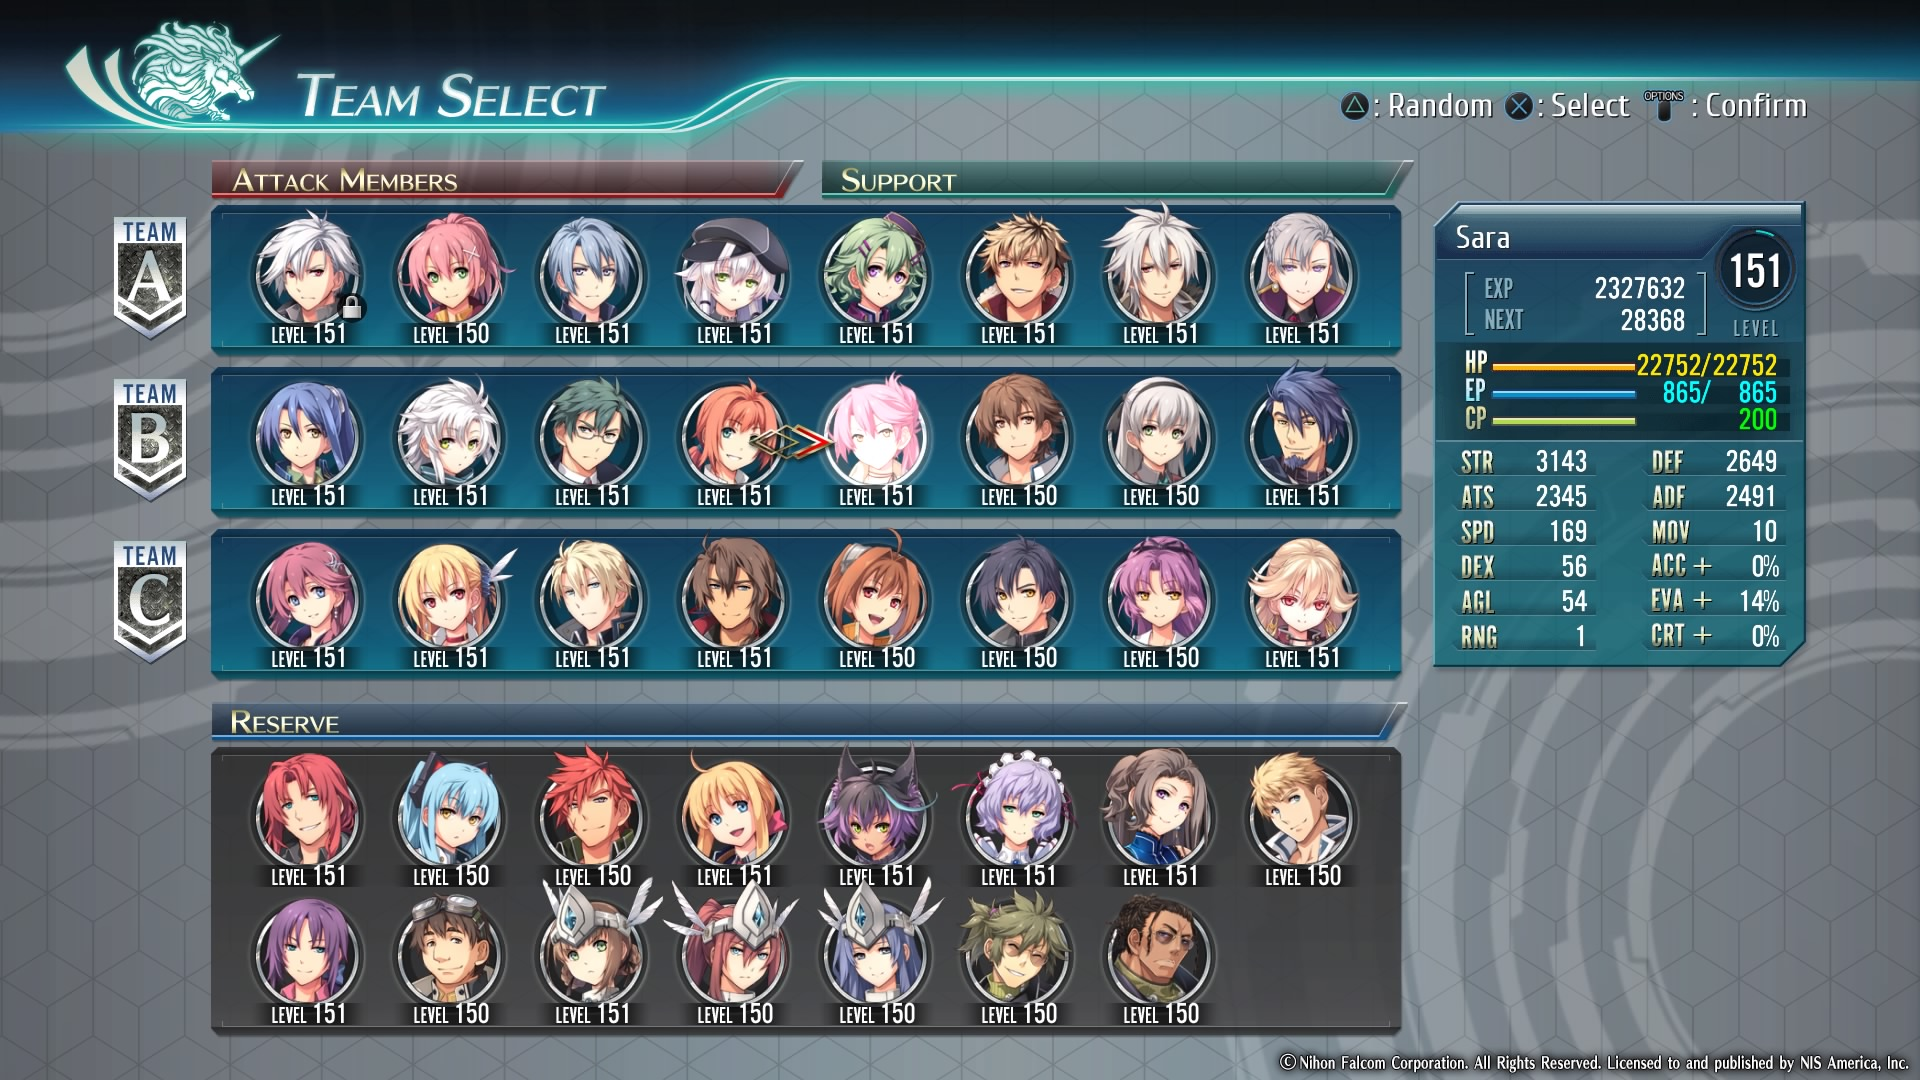 The Legend of Heroes: Trails of Cold Steel IV Casting